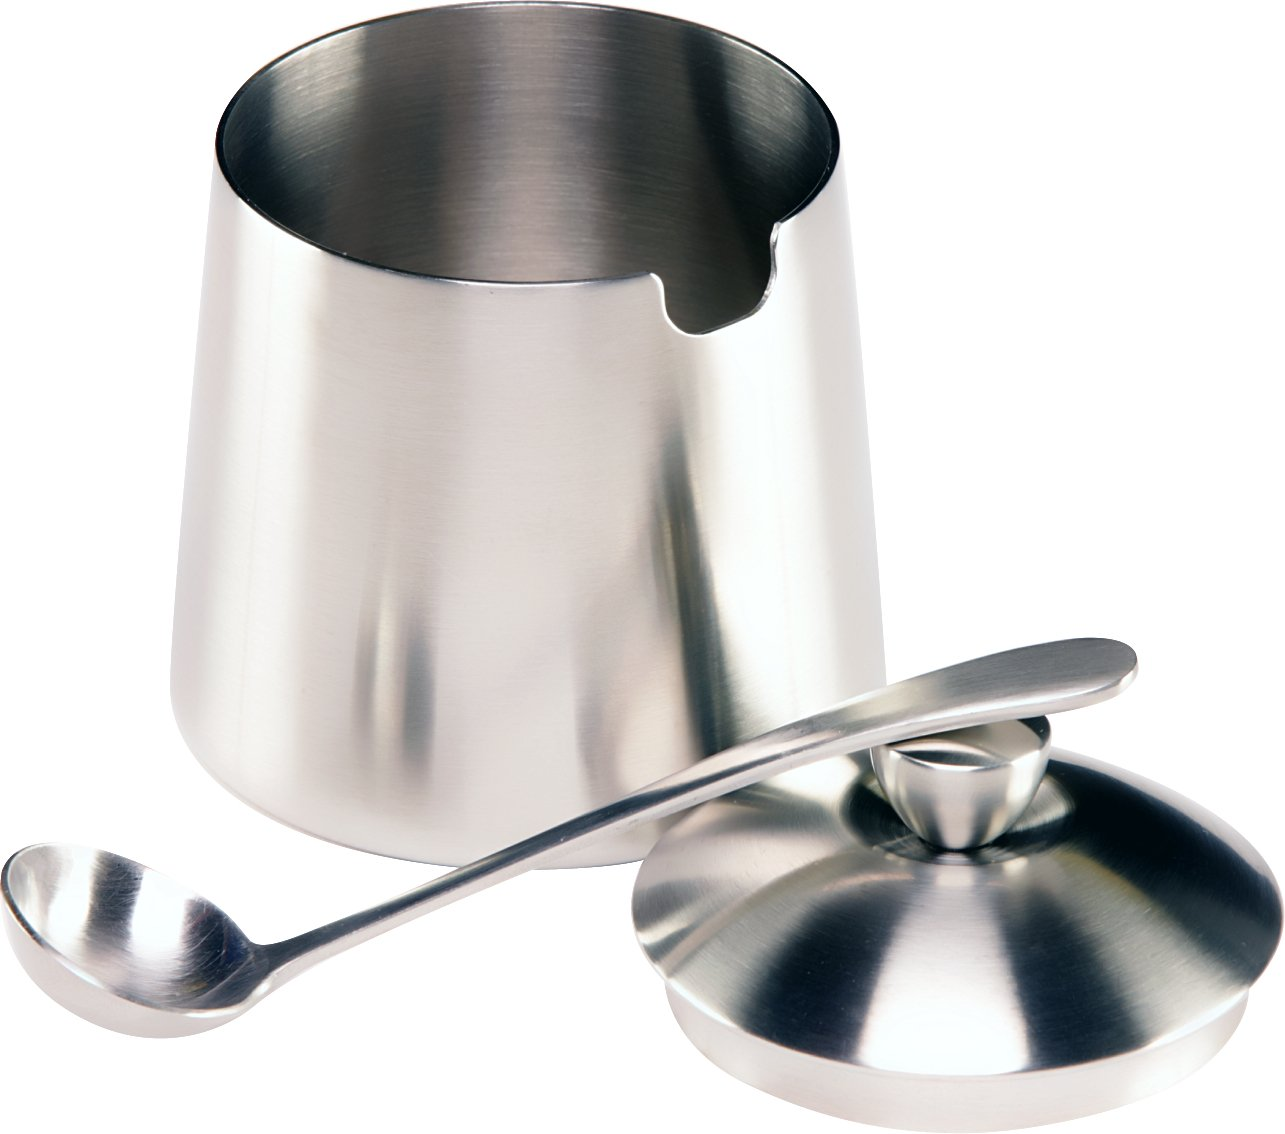 Frieling Brushed Stainless Steel Creamer & Sugar Bowl with Spoon Set by Frieling (Image #4)